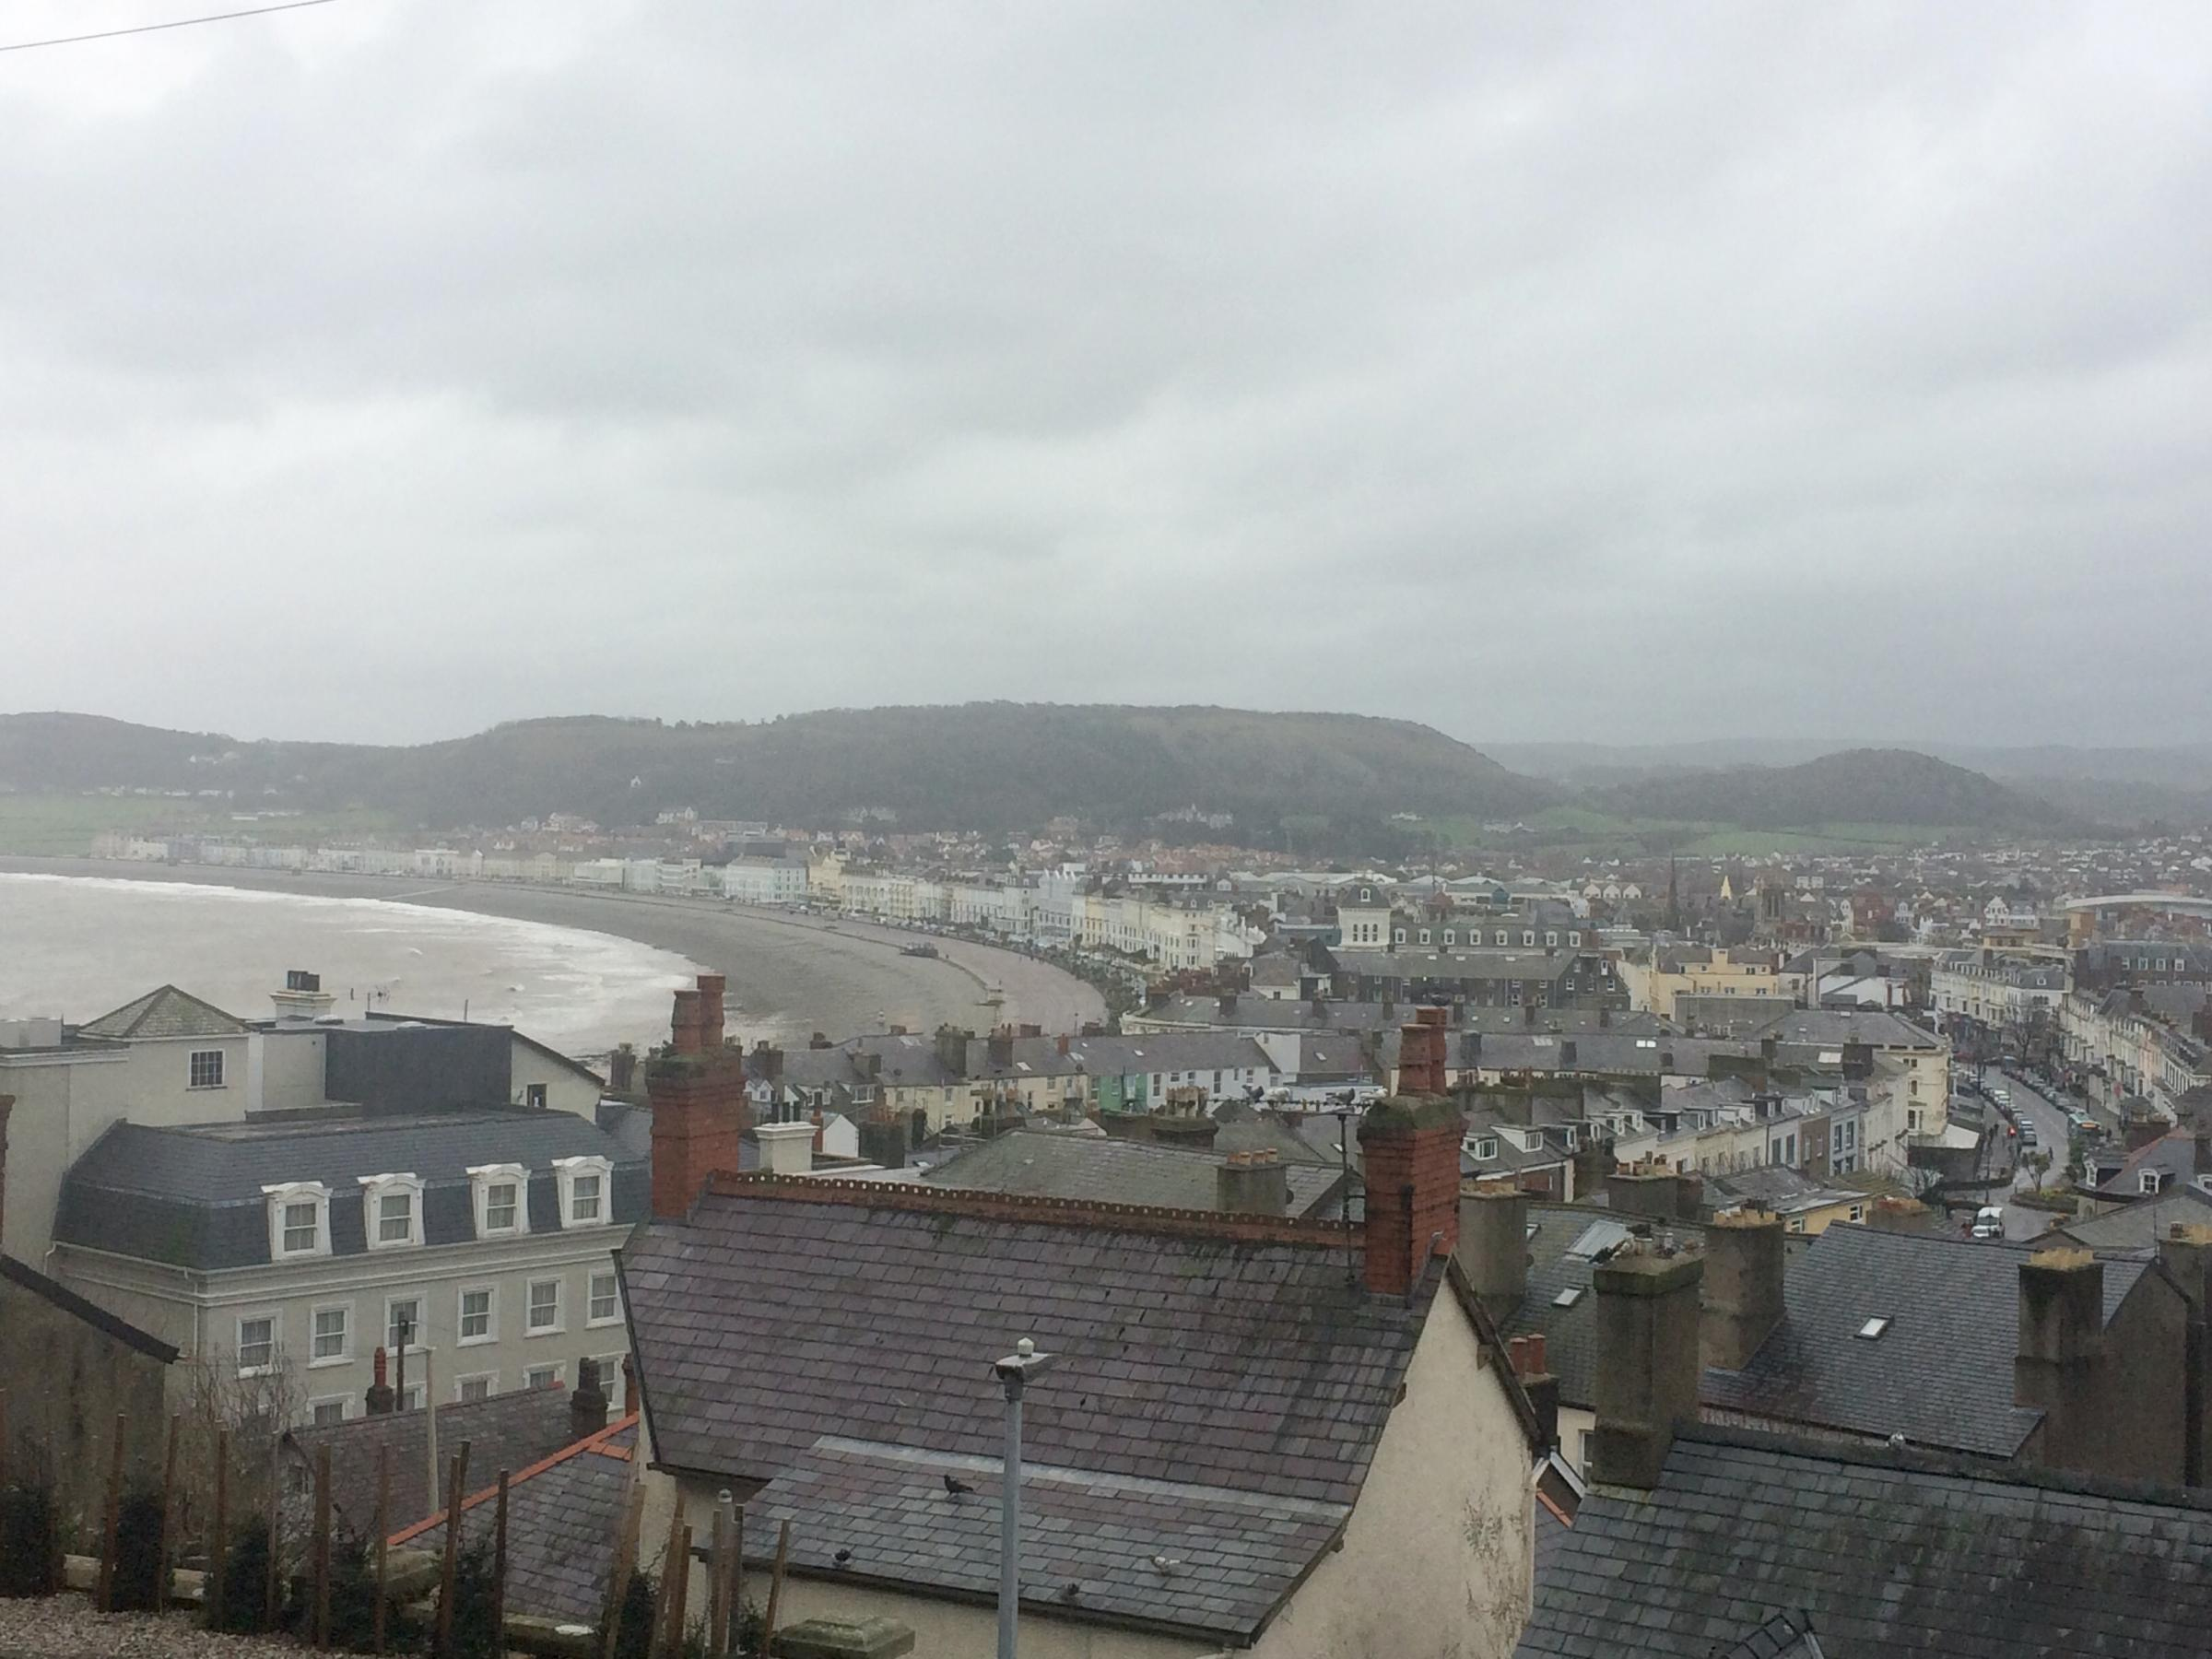 Llandudno flooding risk. Picture: Kerry Roberts